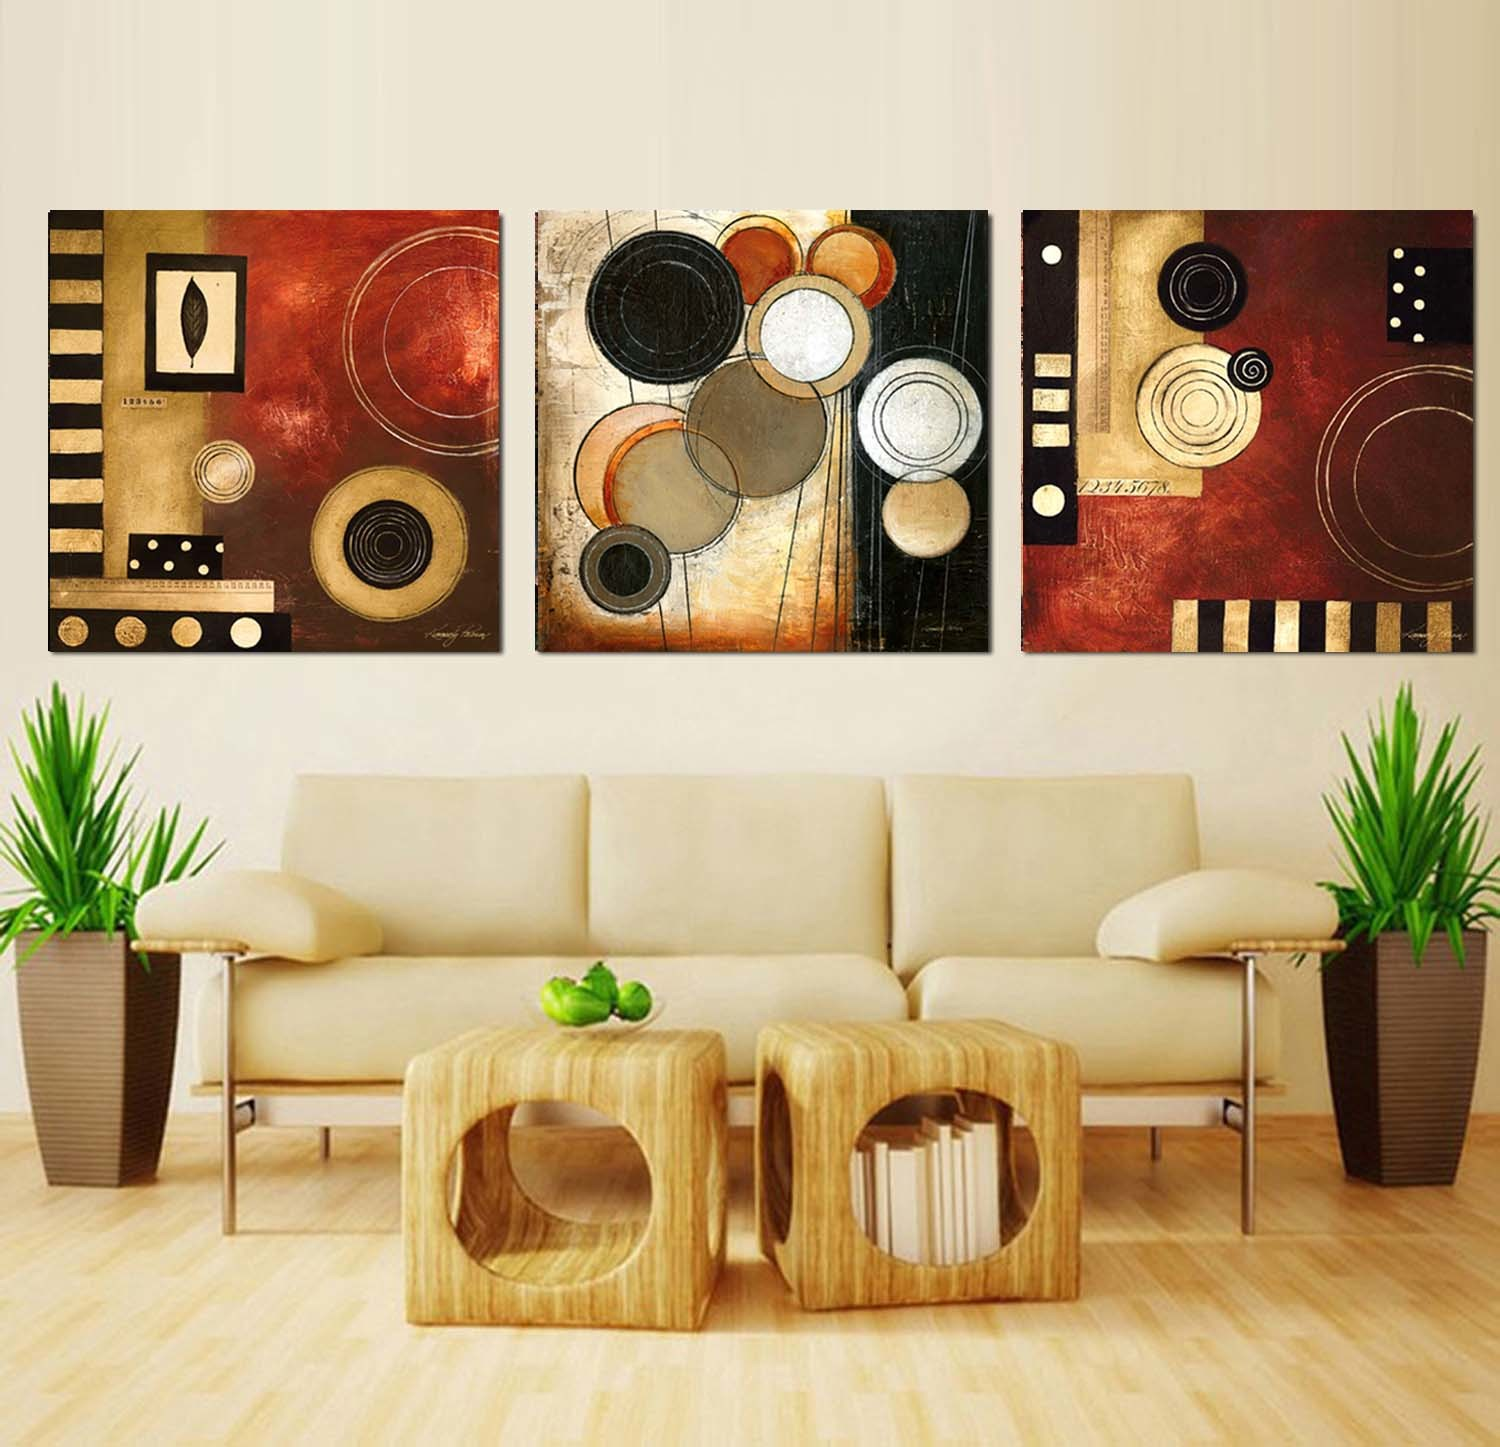 3 Piece Modern Wall Art Printed Painting Abstract Painting Room Decor Framed Art Picture Painted on Canvas Home Decoration Mc-250